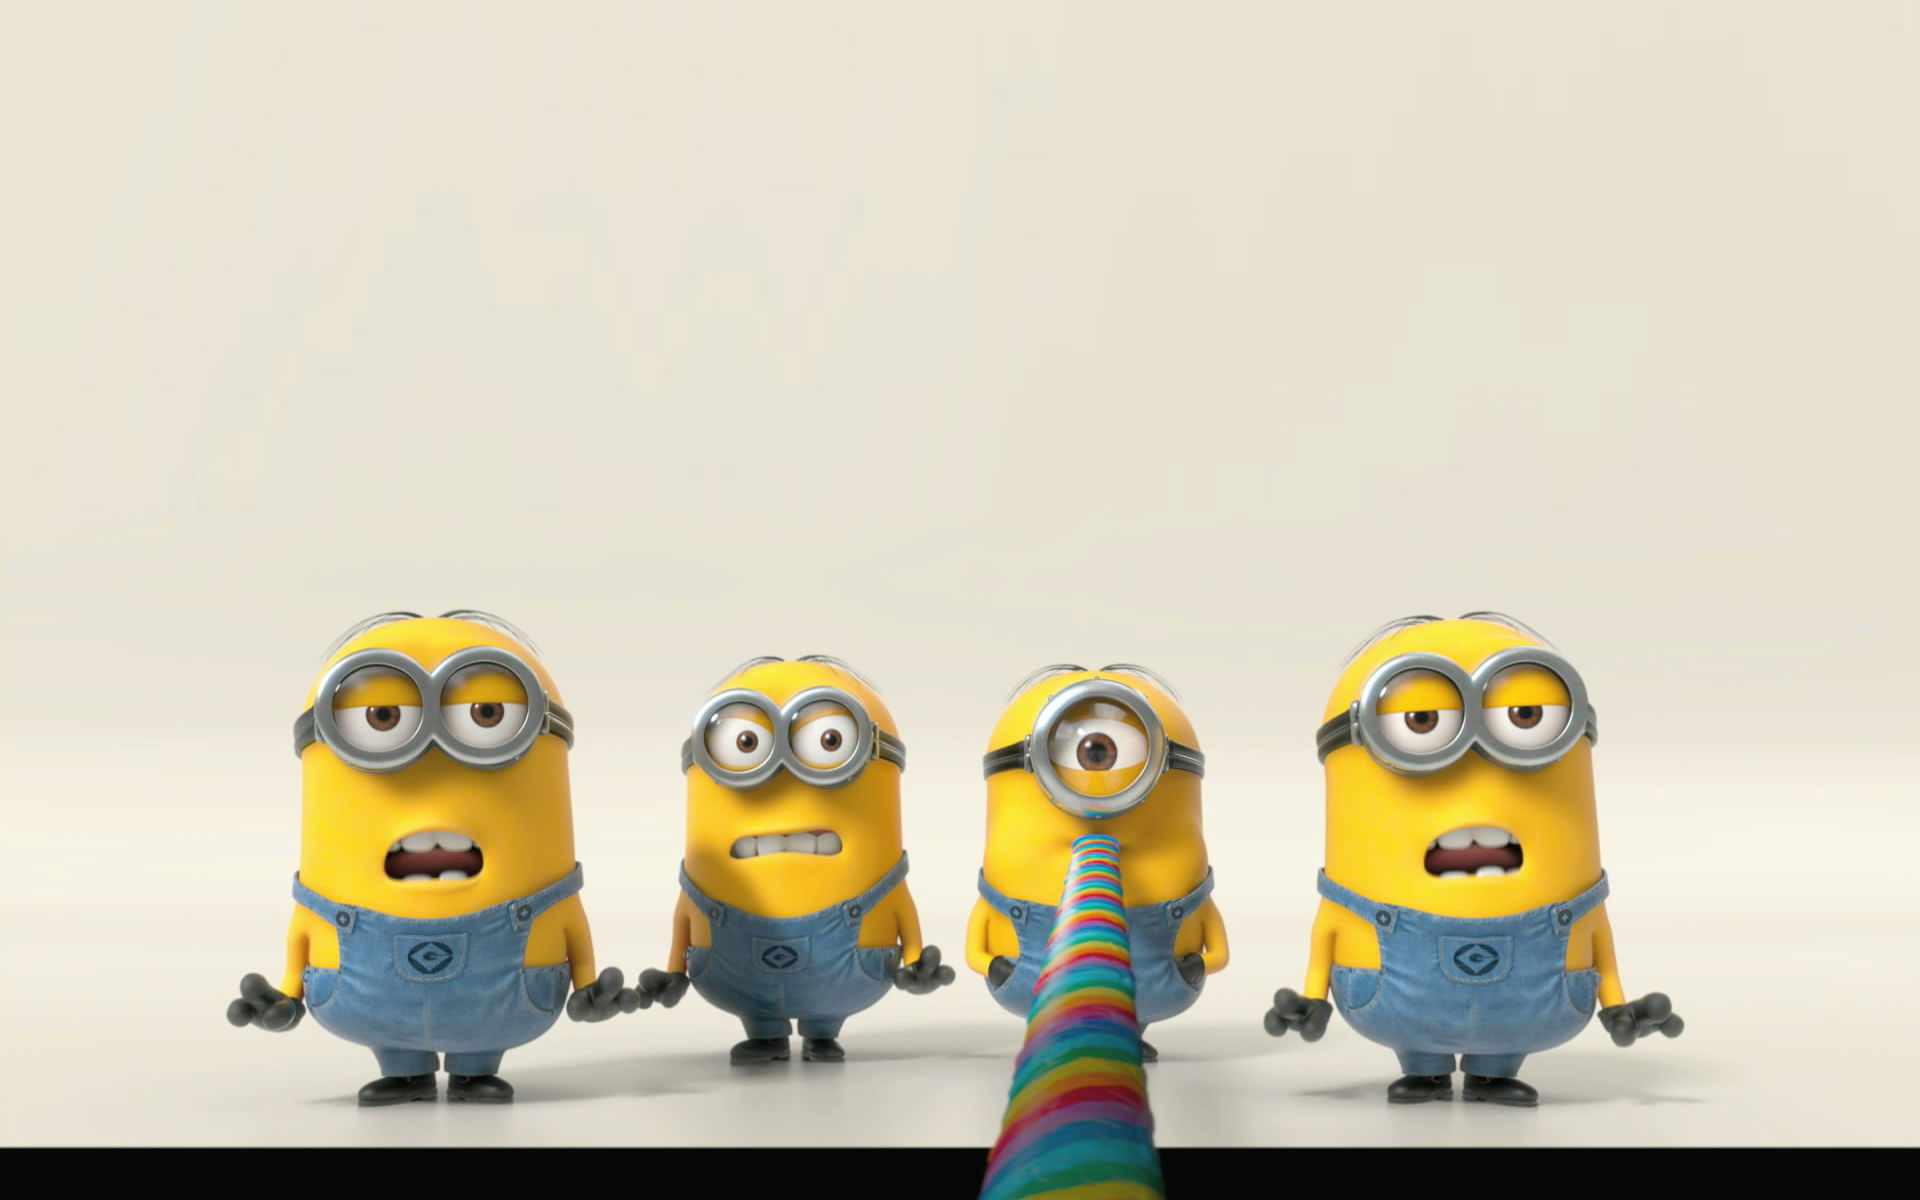 Amazing-minions-and-mobile-minions-wallpaper-wpc9002165